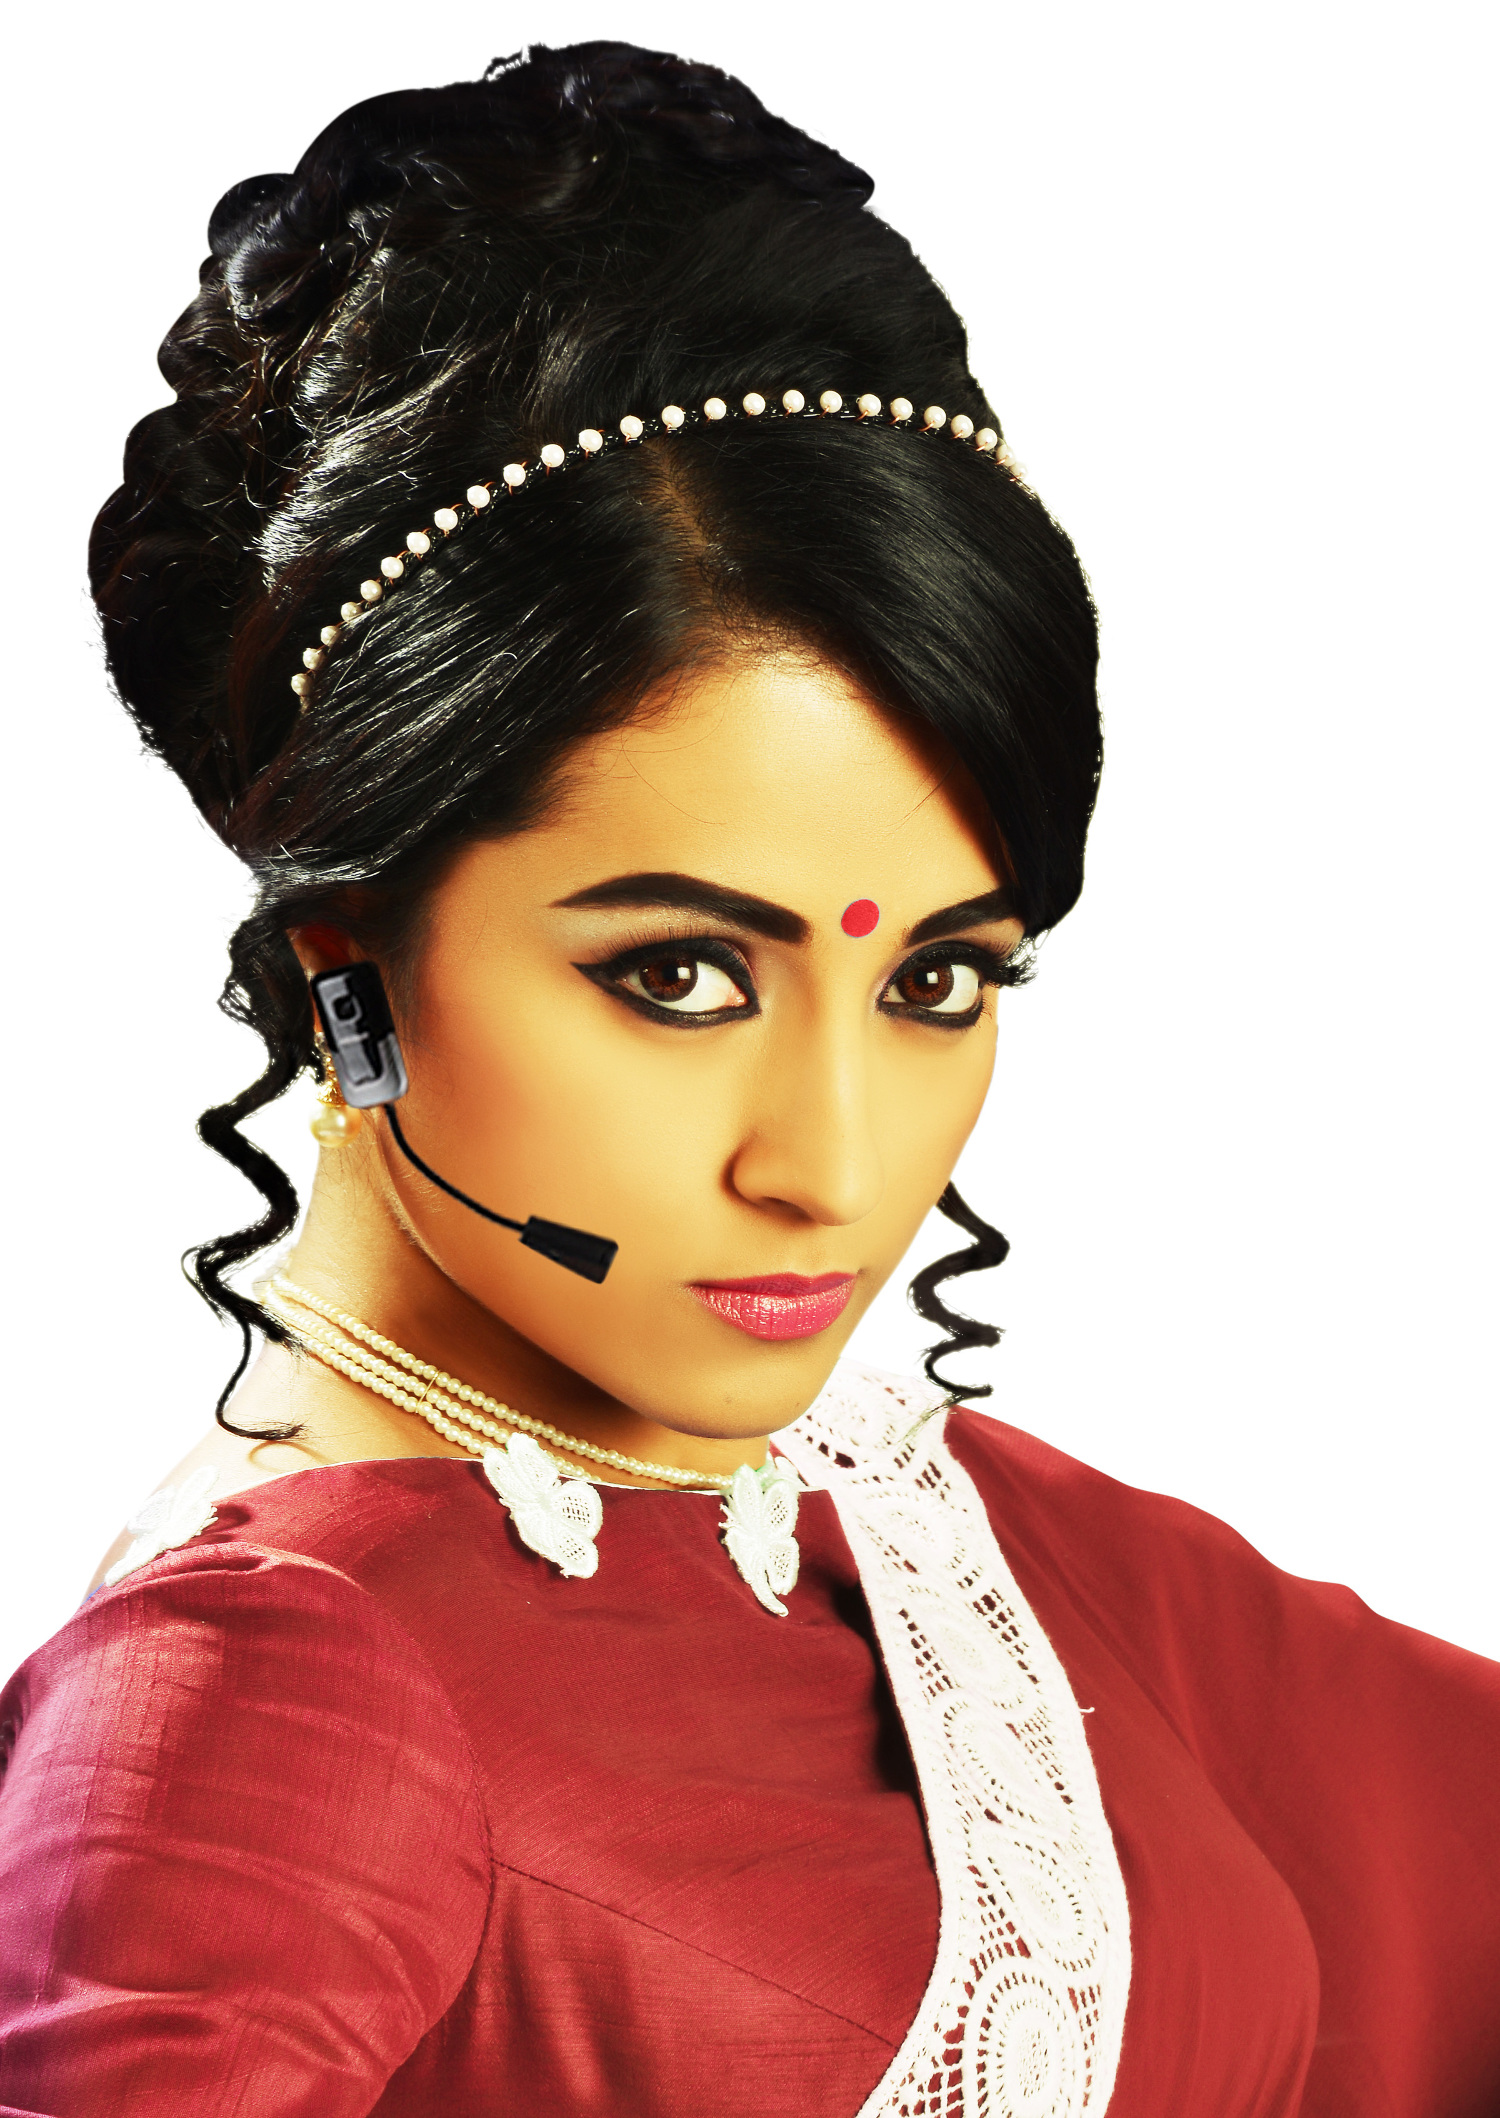 Trishna Film Nayaki Wallpaper : nayaki on Rediff Pages